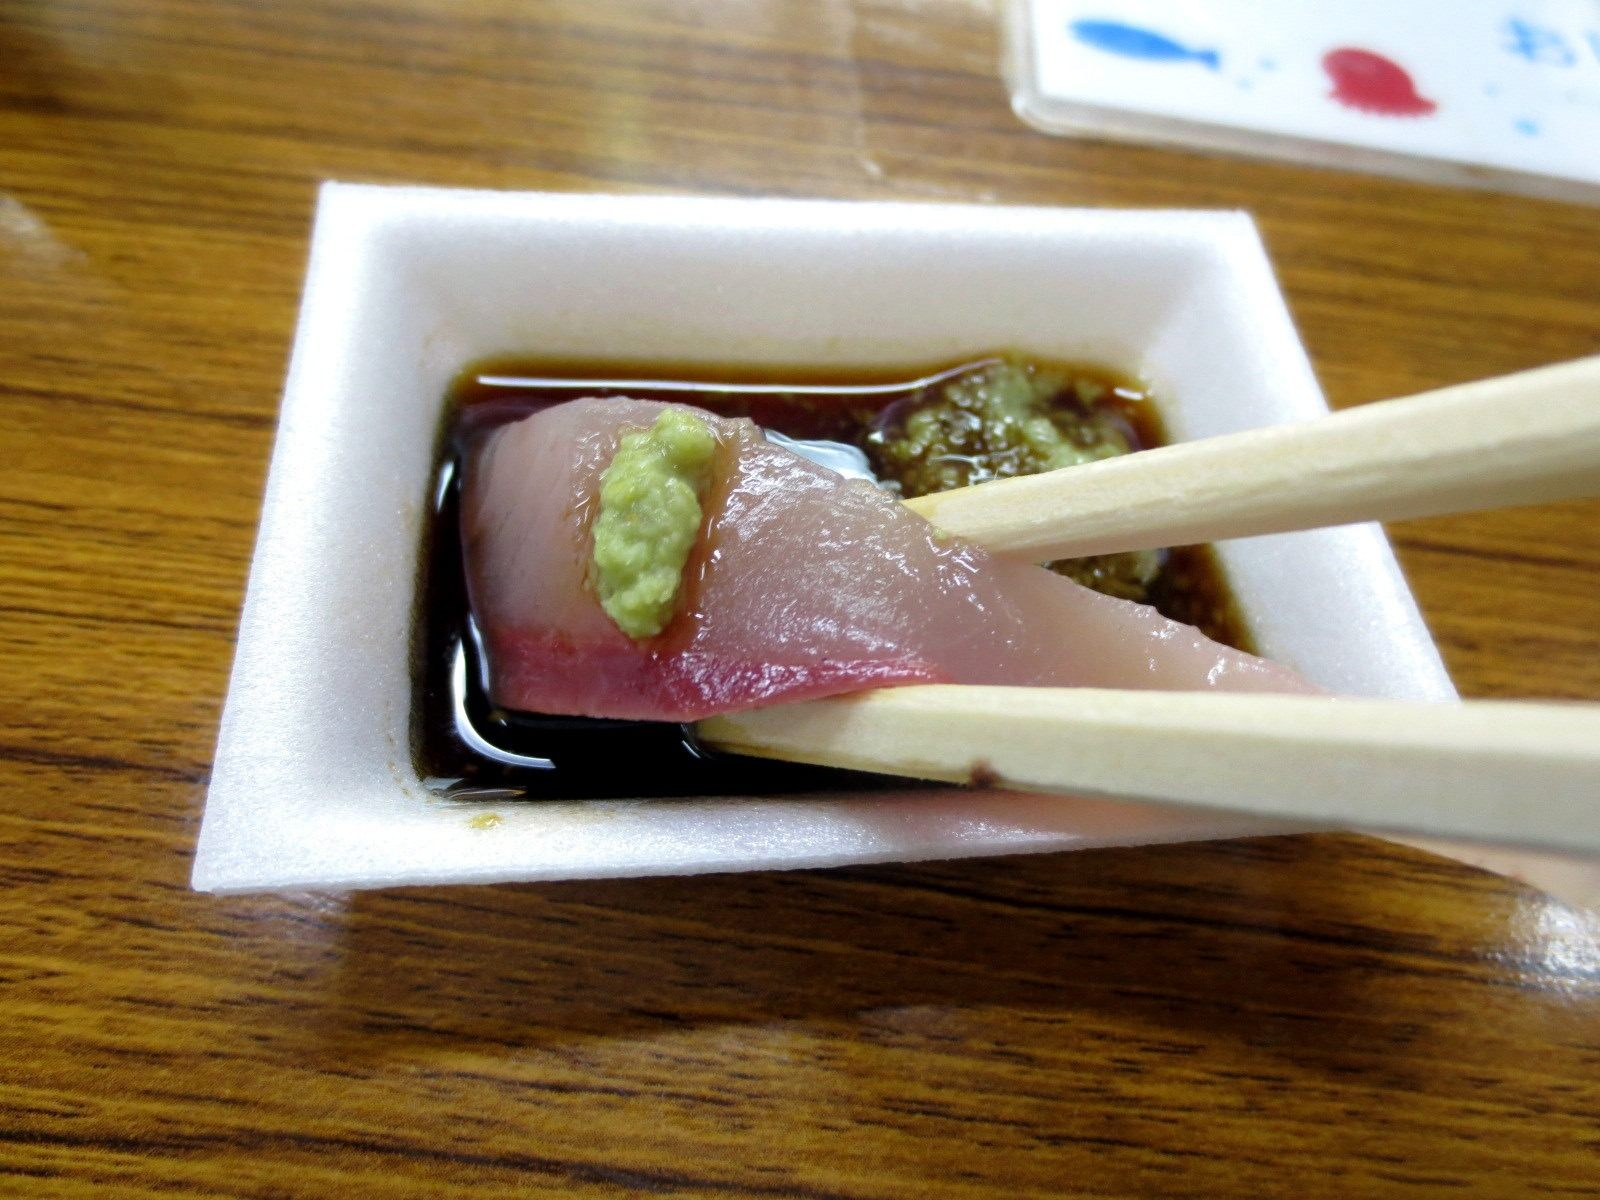 Eating it with wasabi and soy sauce